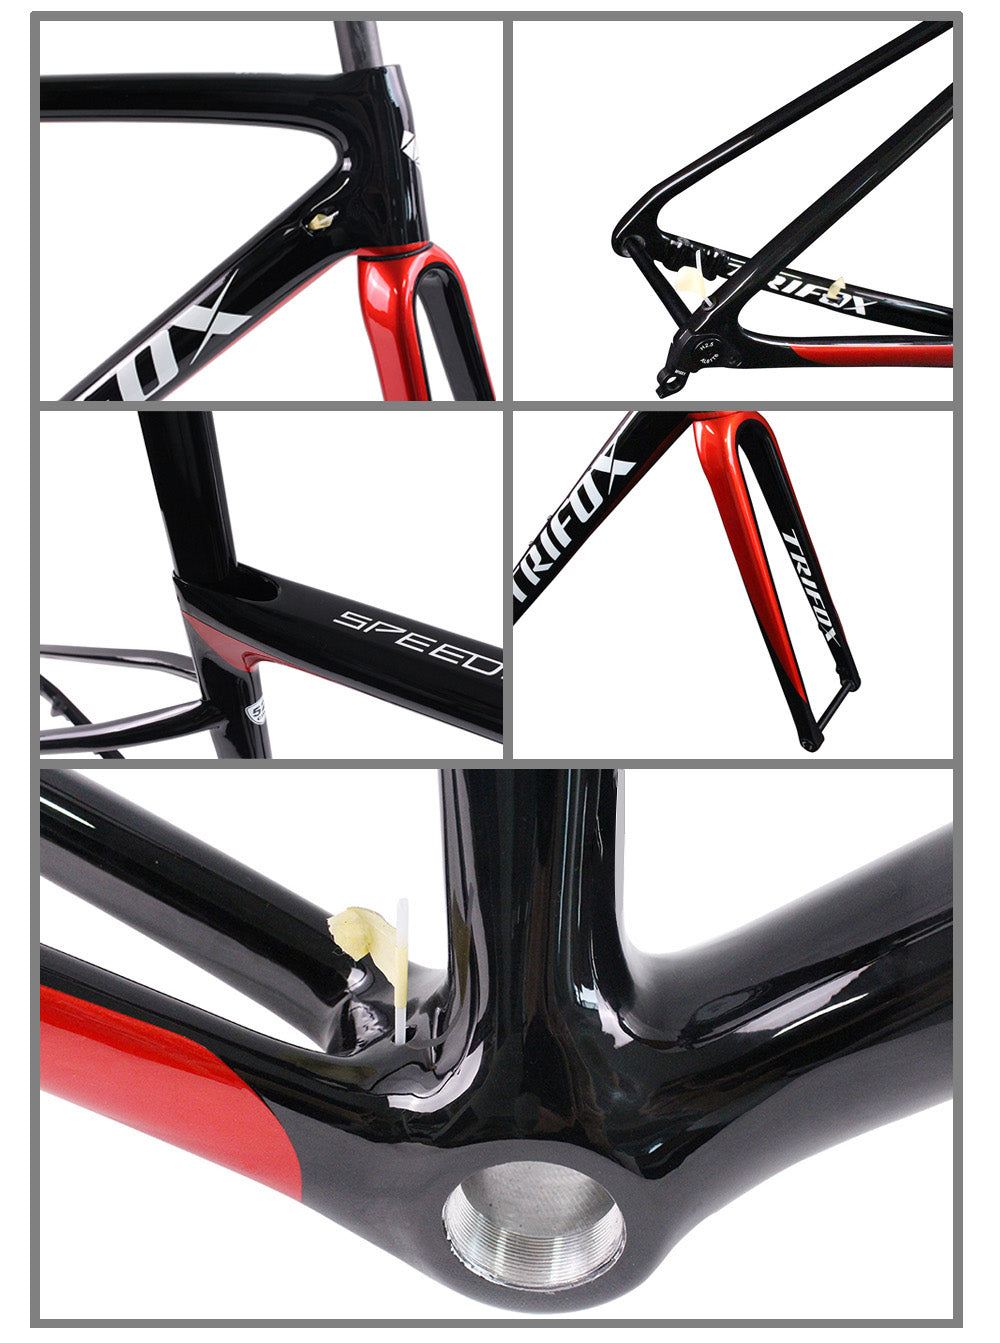 Trifox Carbon Road Bike Frameset X16 Thru Axle Version Details